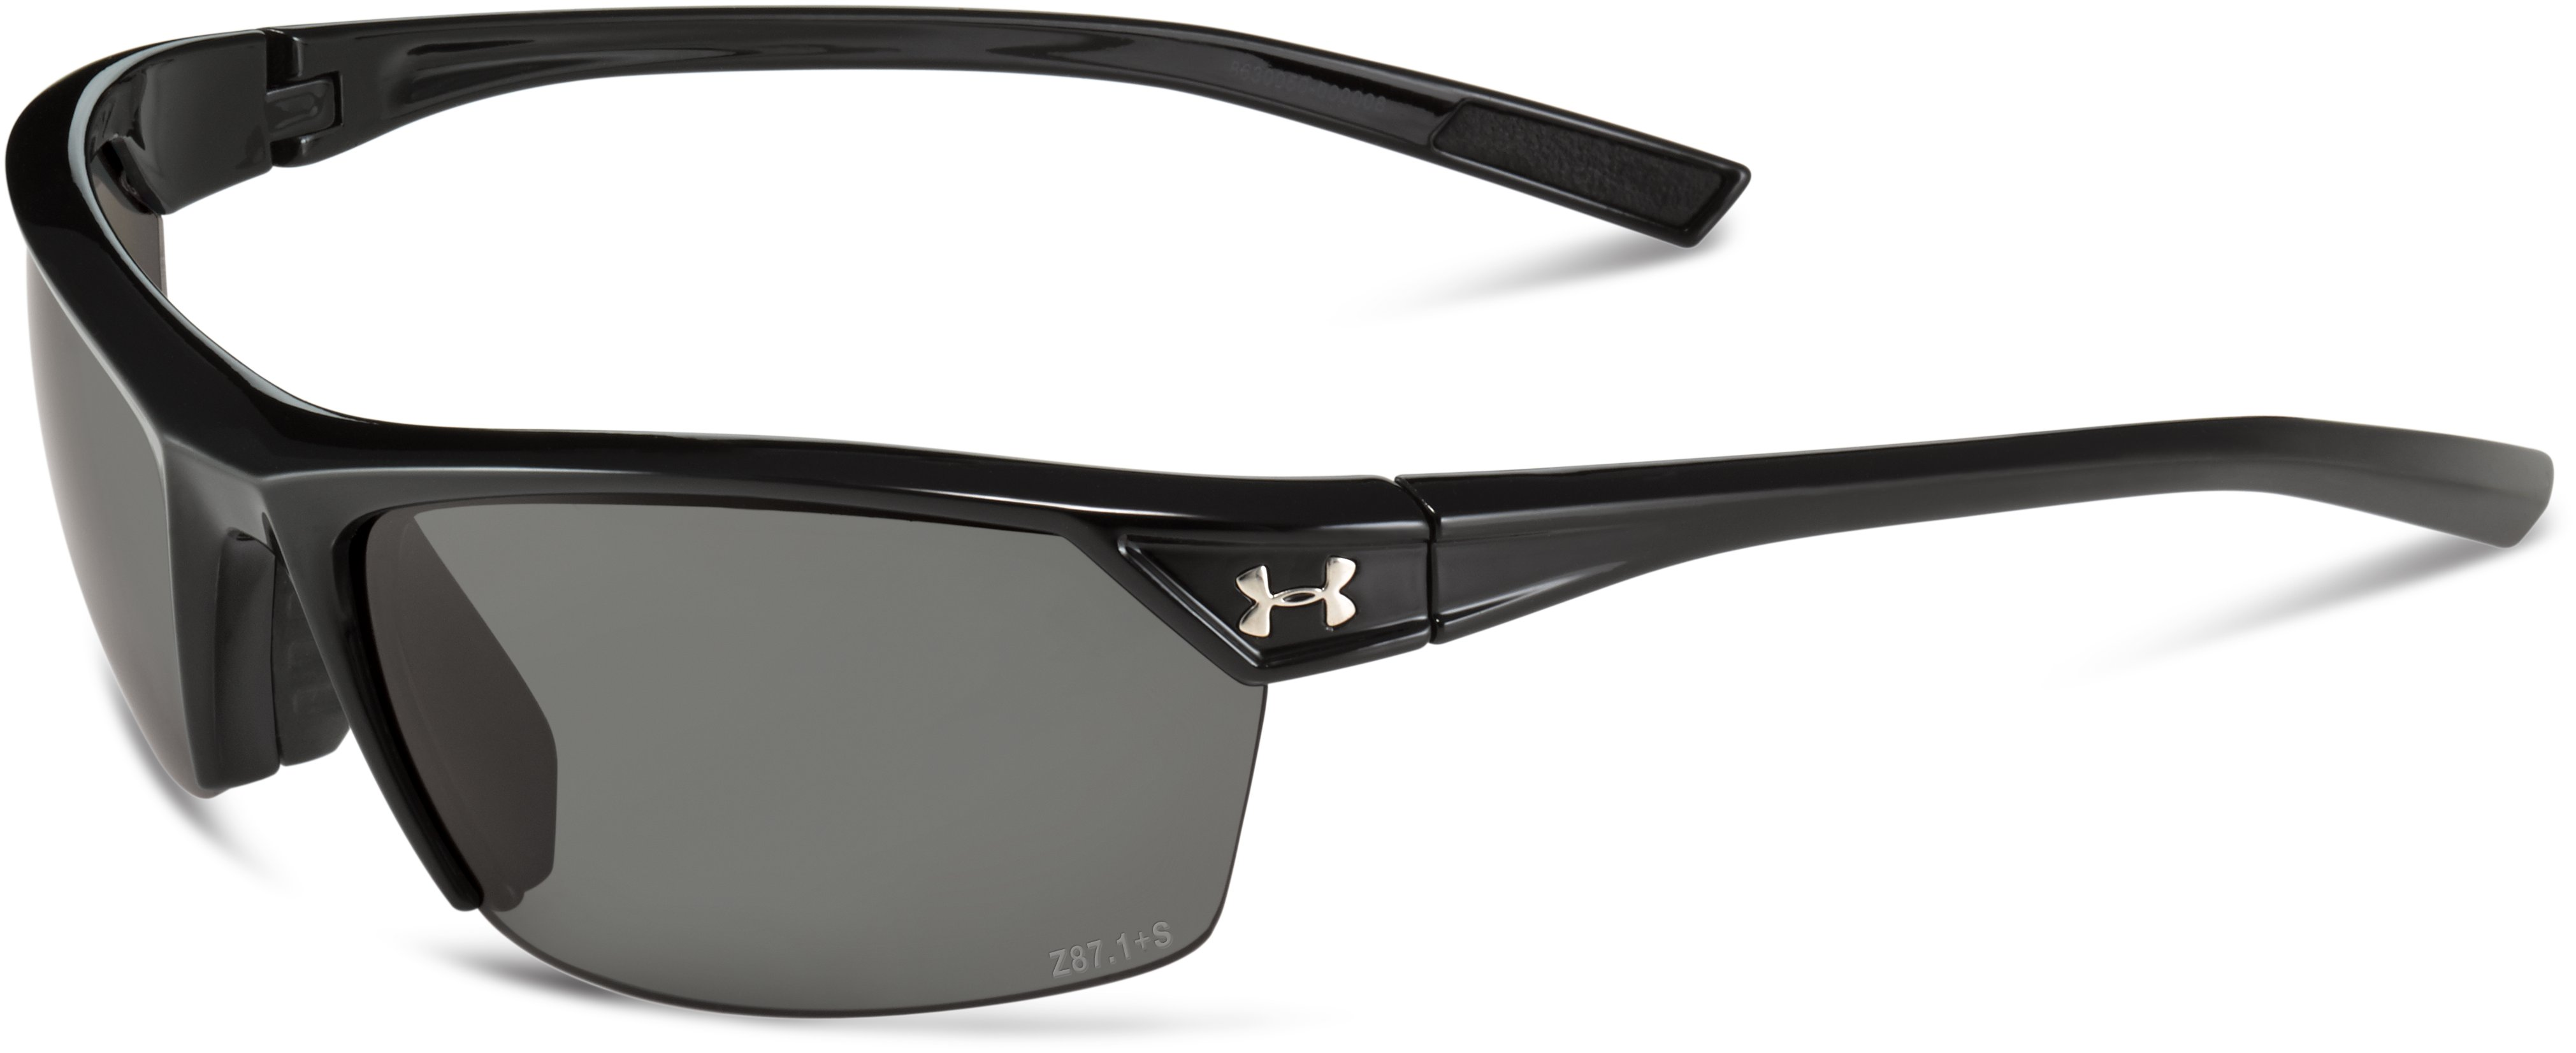 UA Zone 2.0 Storm Polarized Sunglasses, Shiny Black